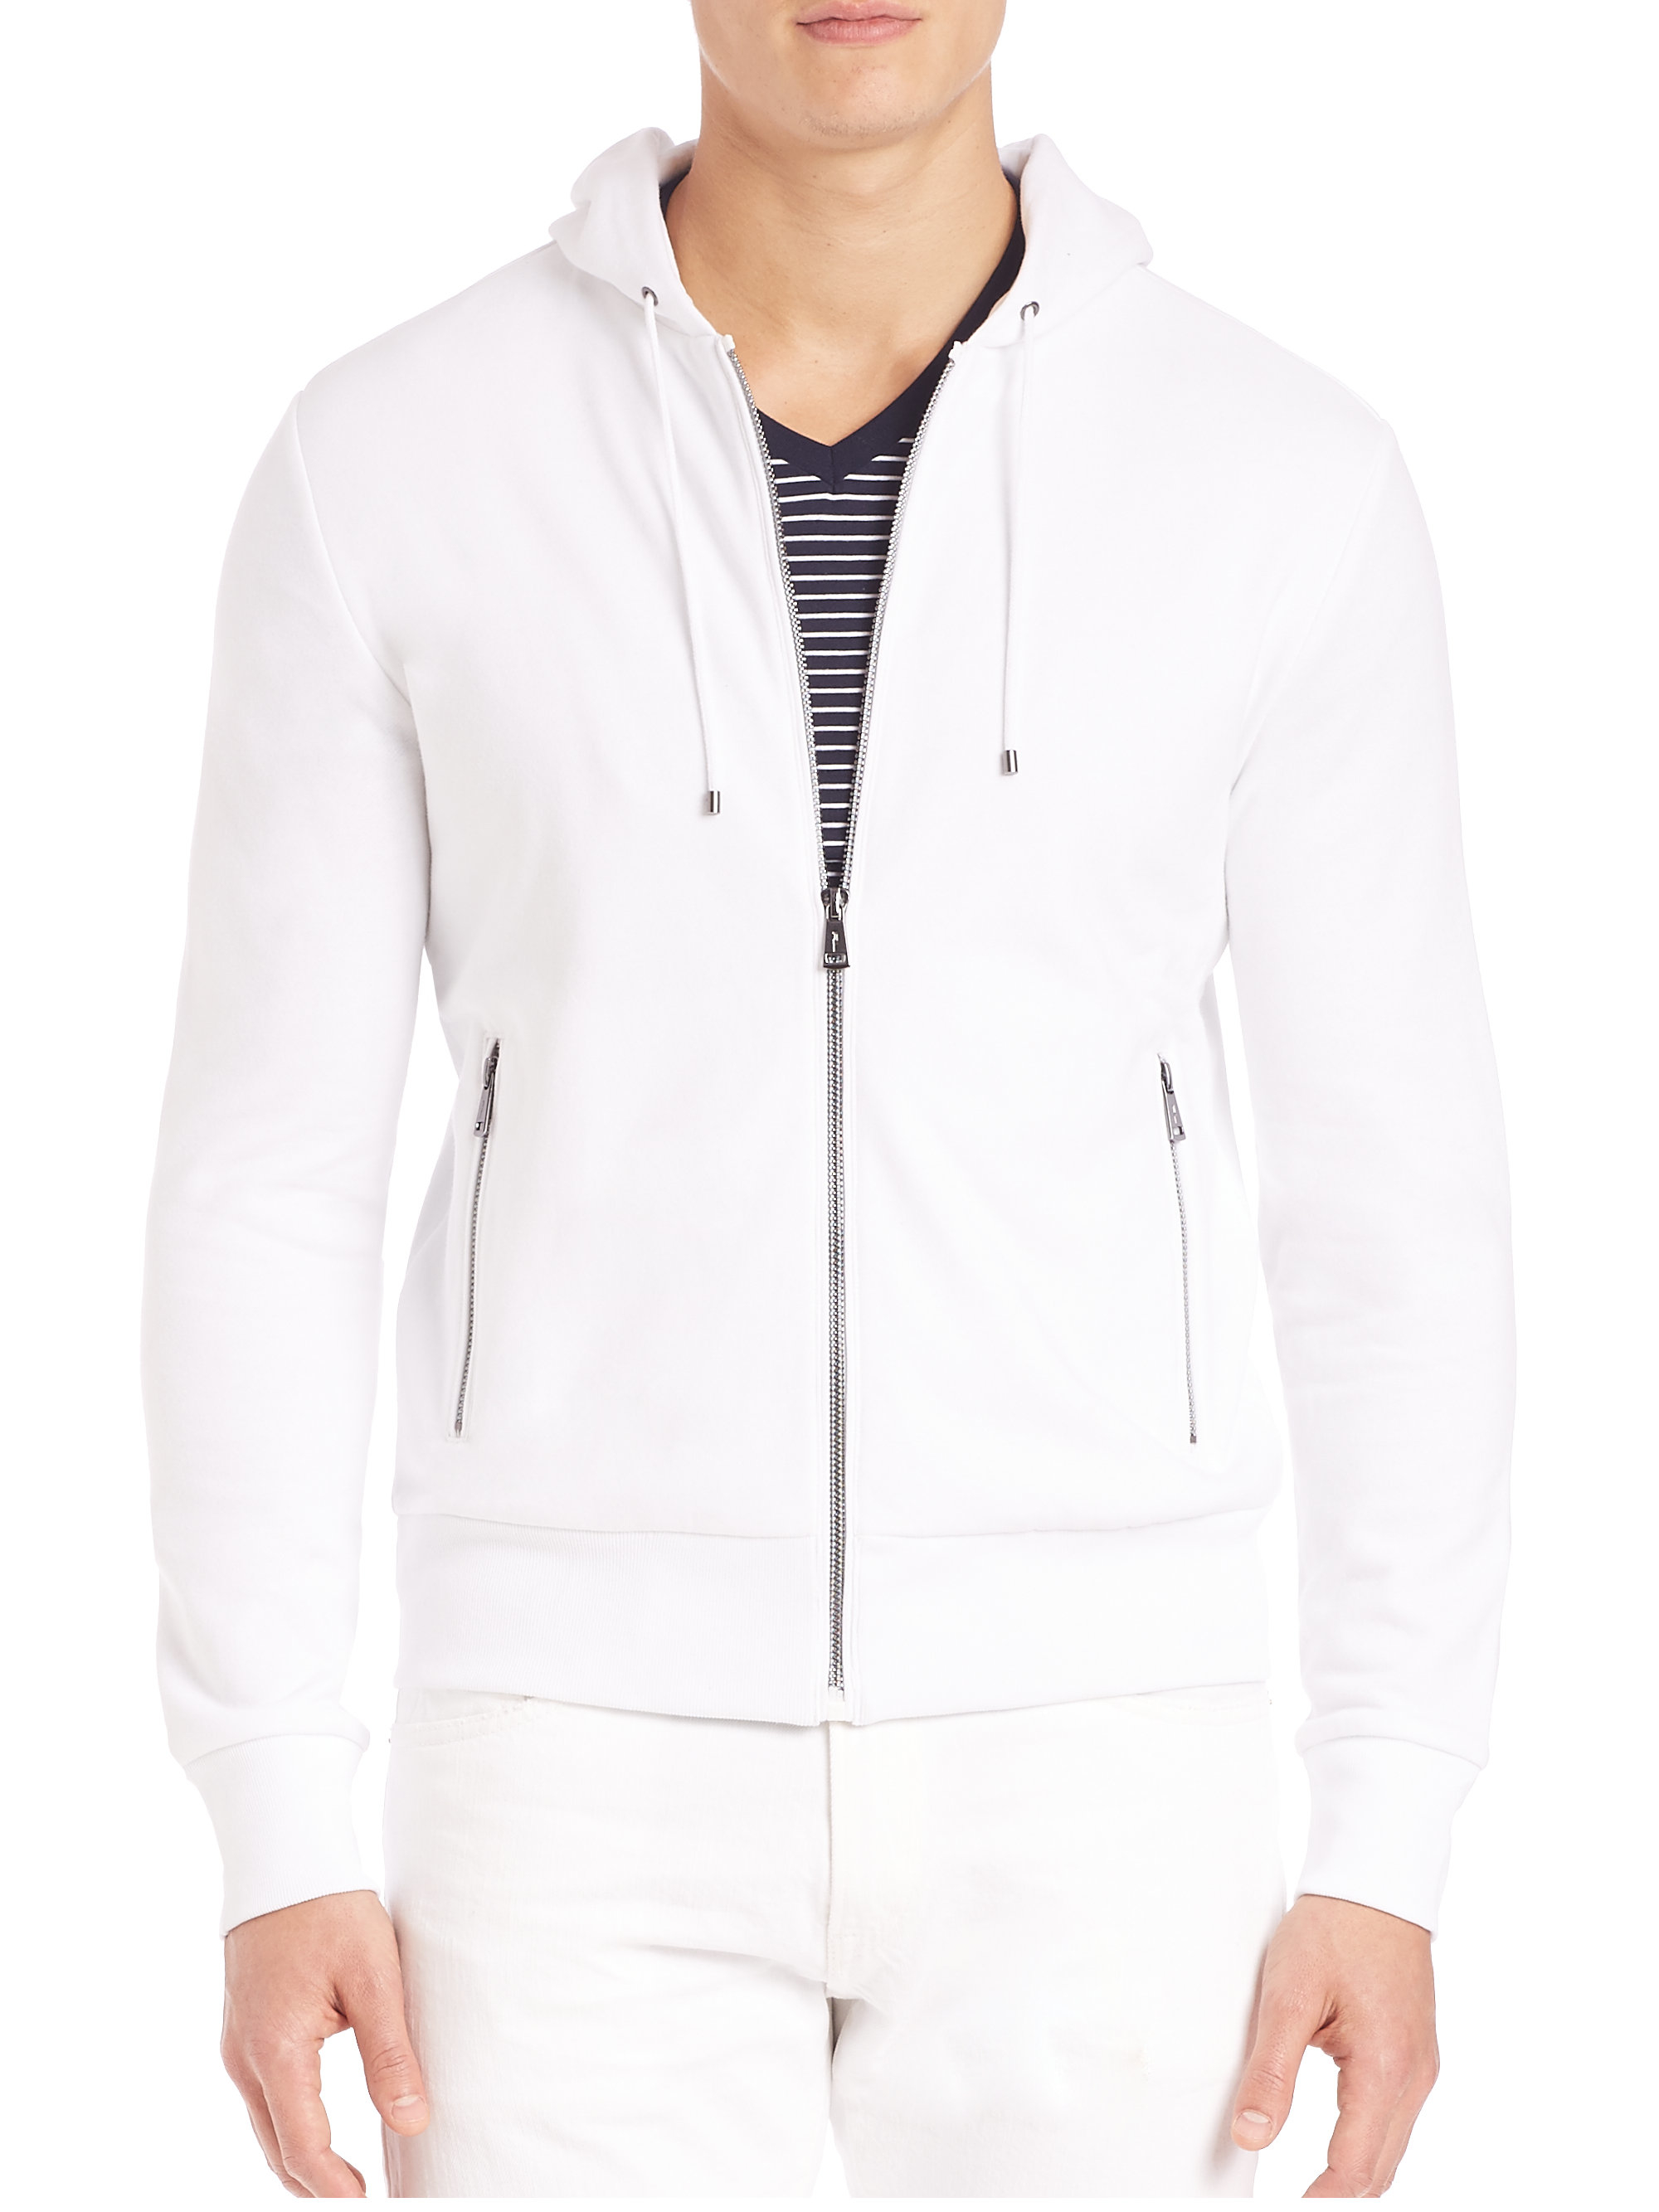 lyst polo ralph lauren fleece hoodie in white for men. Black Bedroom Furniture Sets. Home Design Ideas